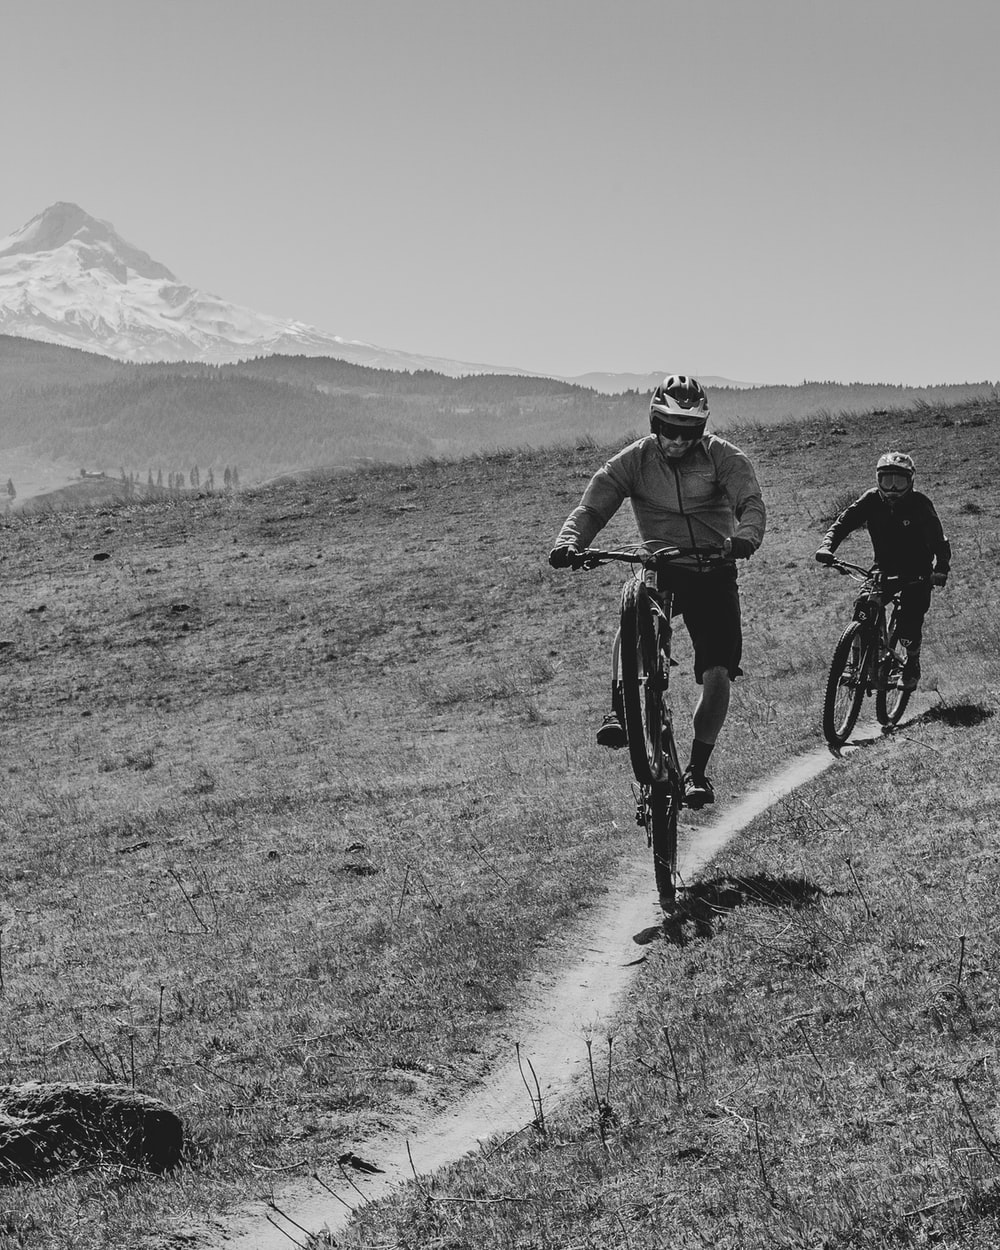 grayscale photo of 2 men riding bicycle on road